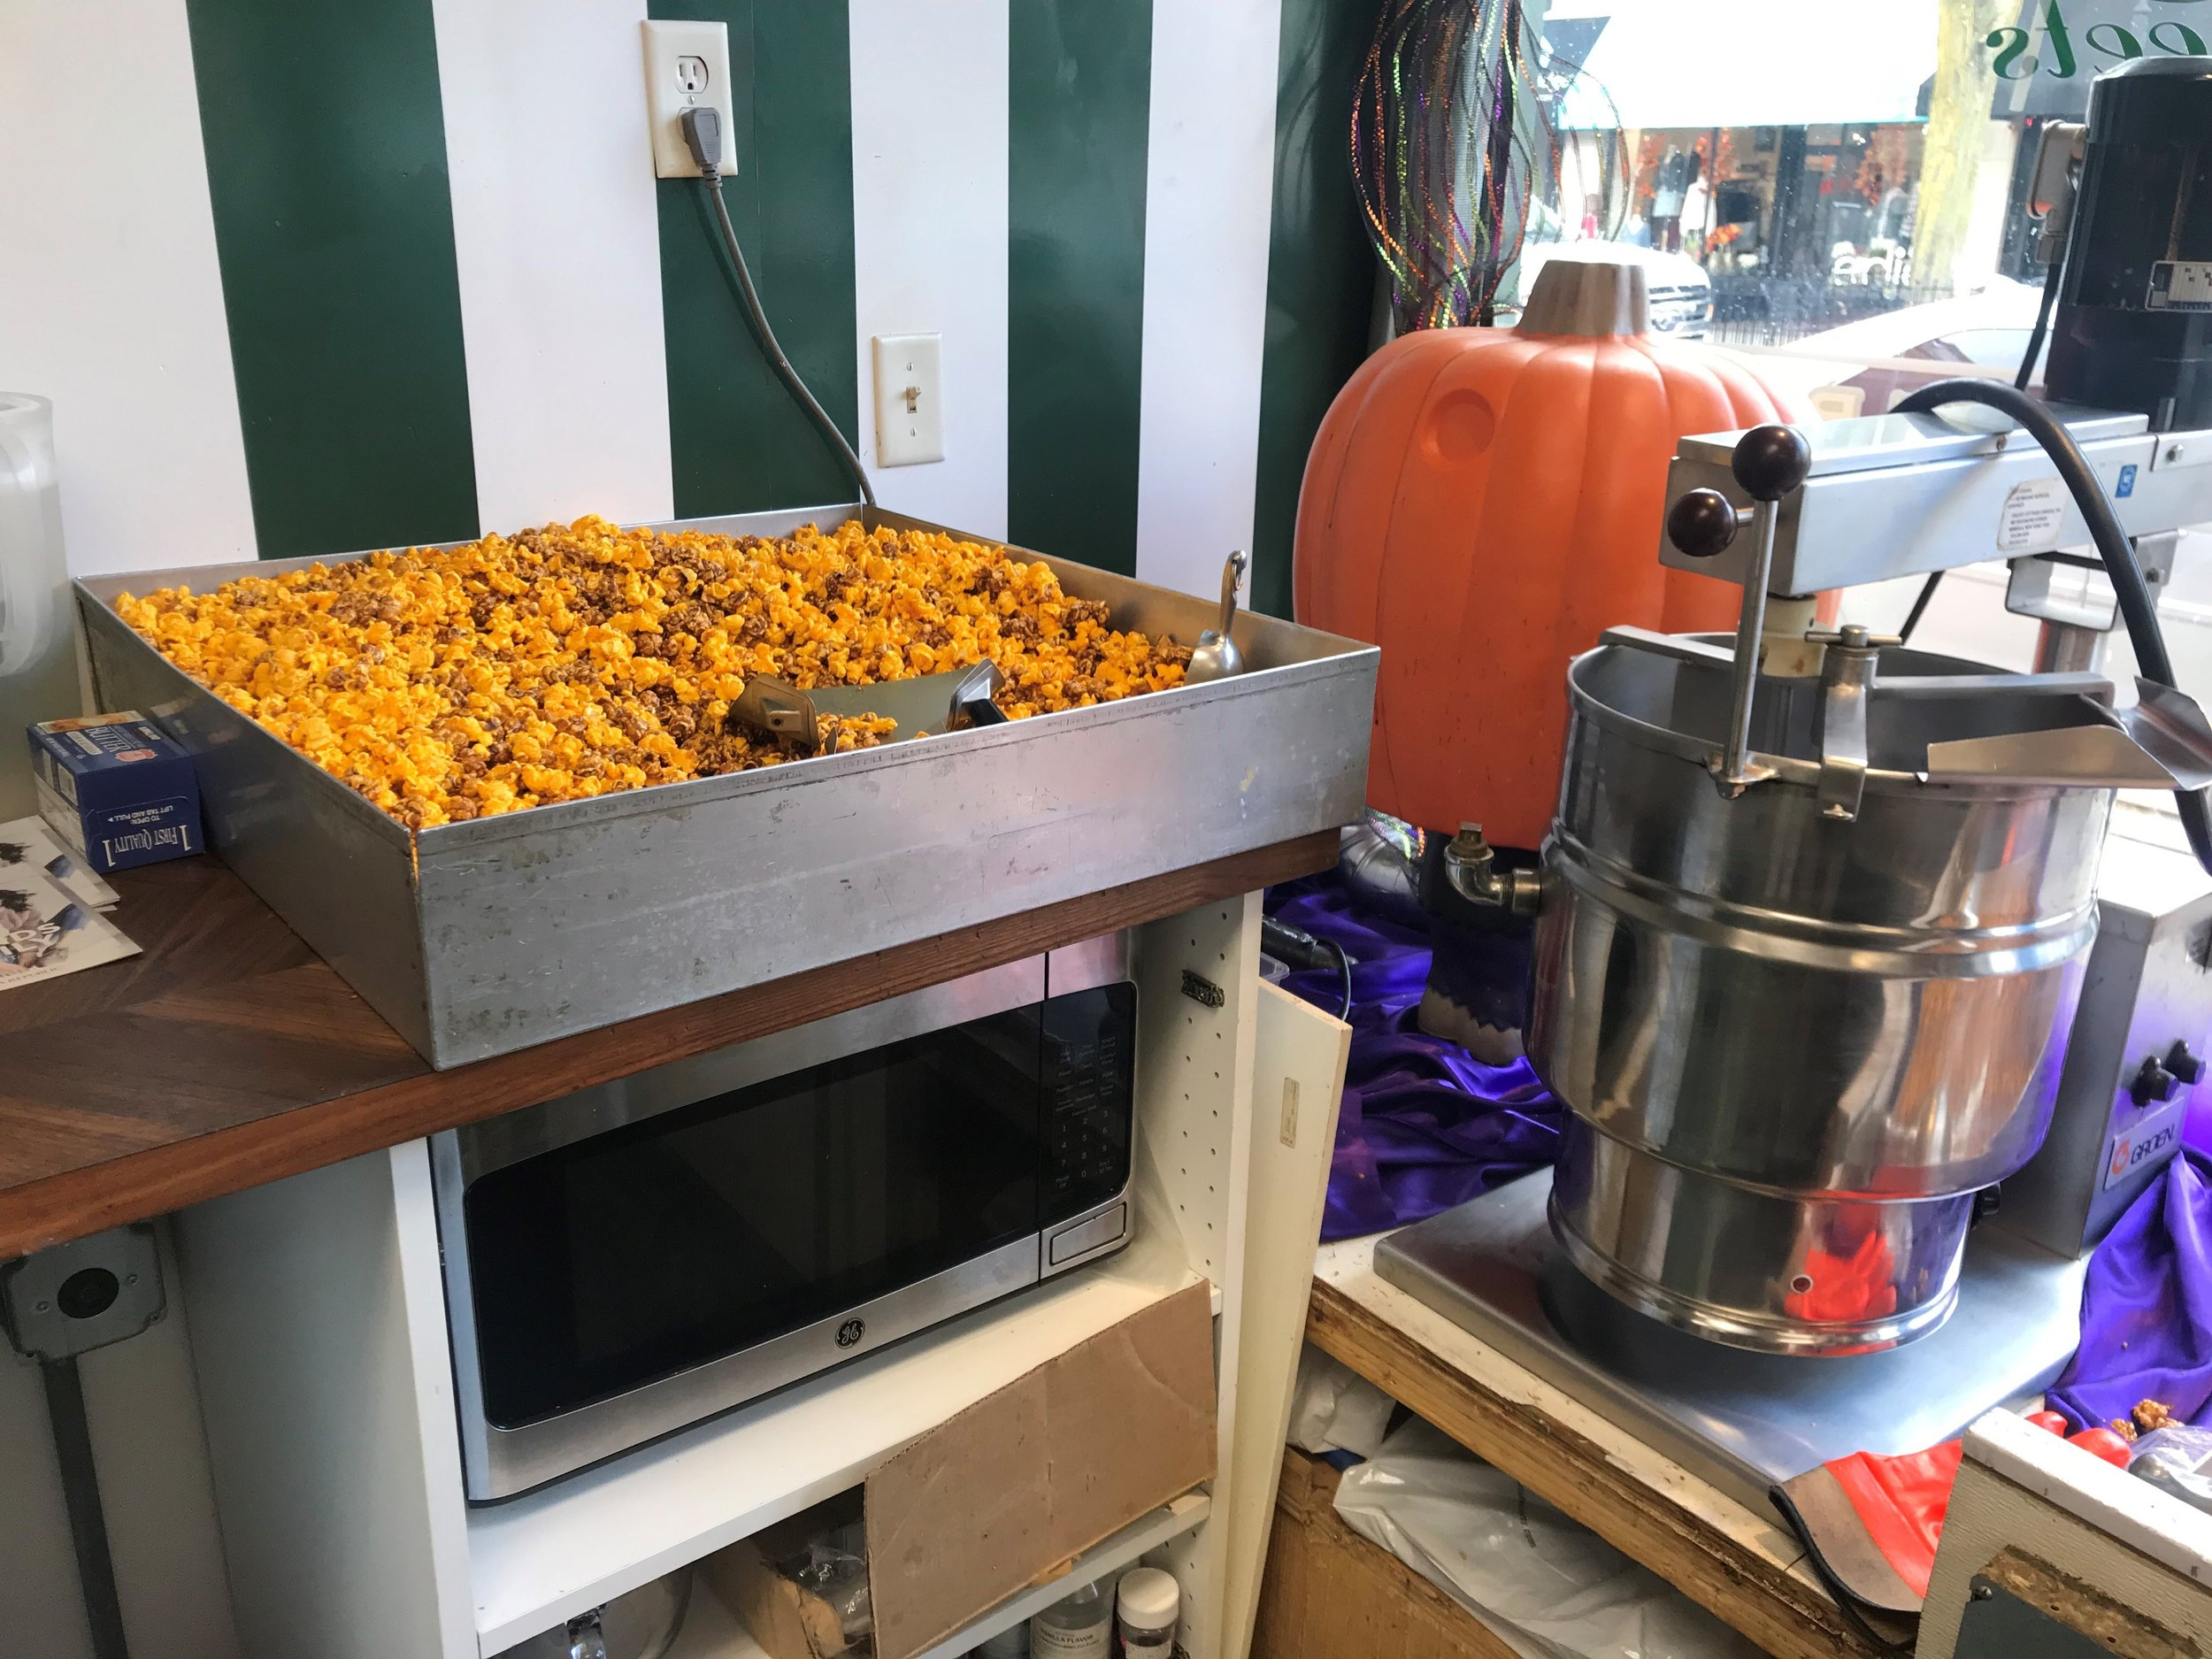 The smell of freshly popped cheese and caramel corn lures people walking down Jefferson Ave. in downtown Naperville